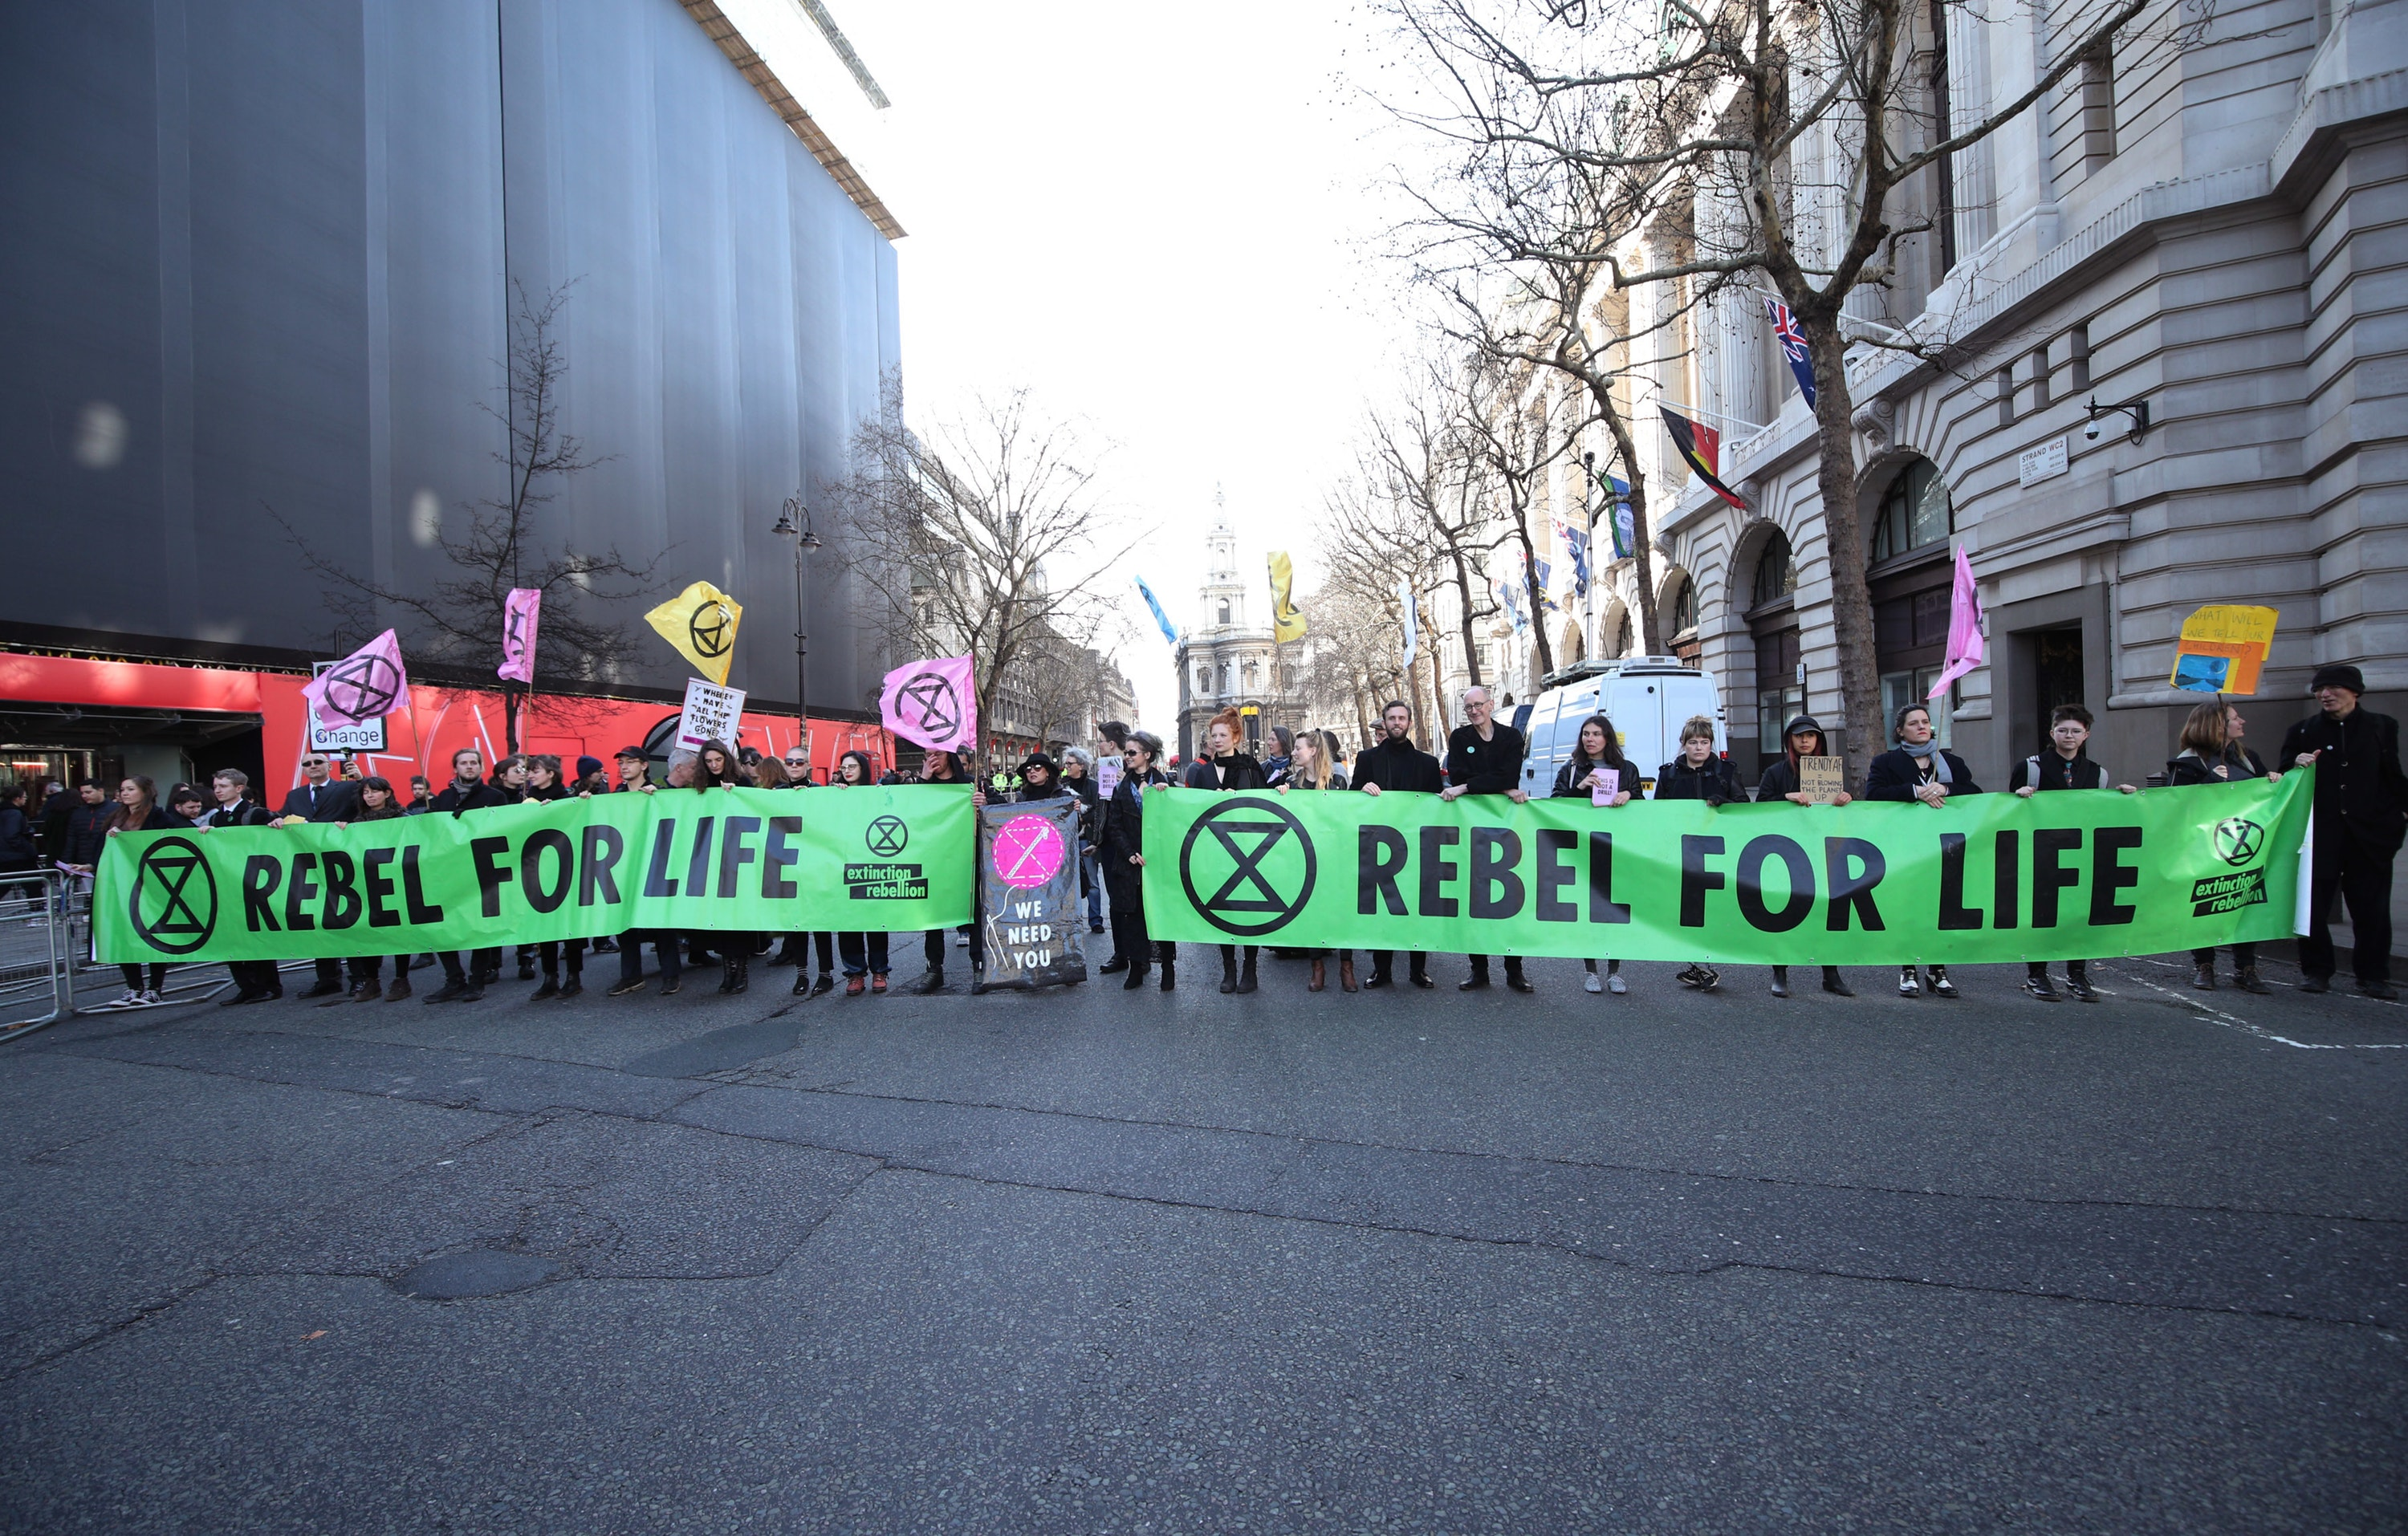 Exctinction rebellion protest